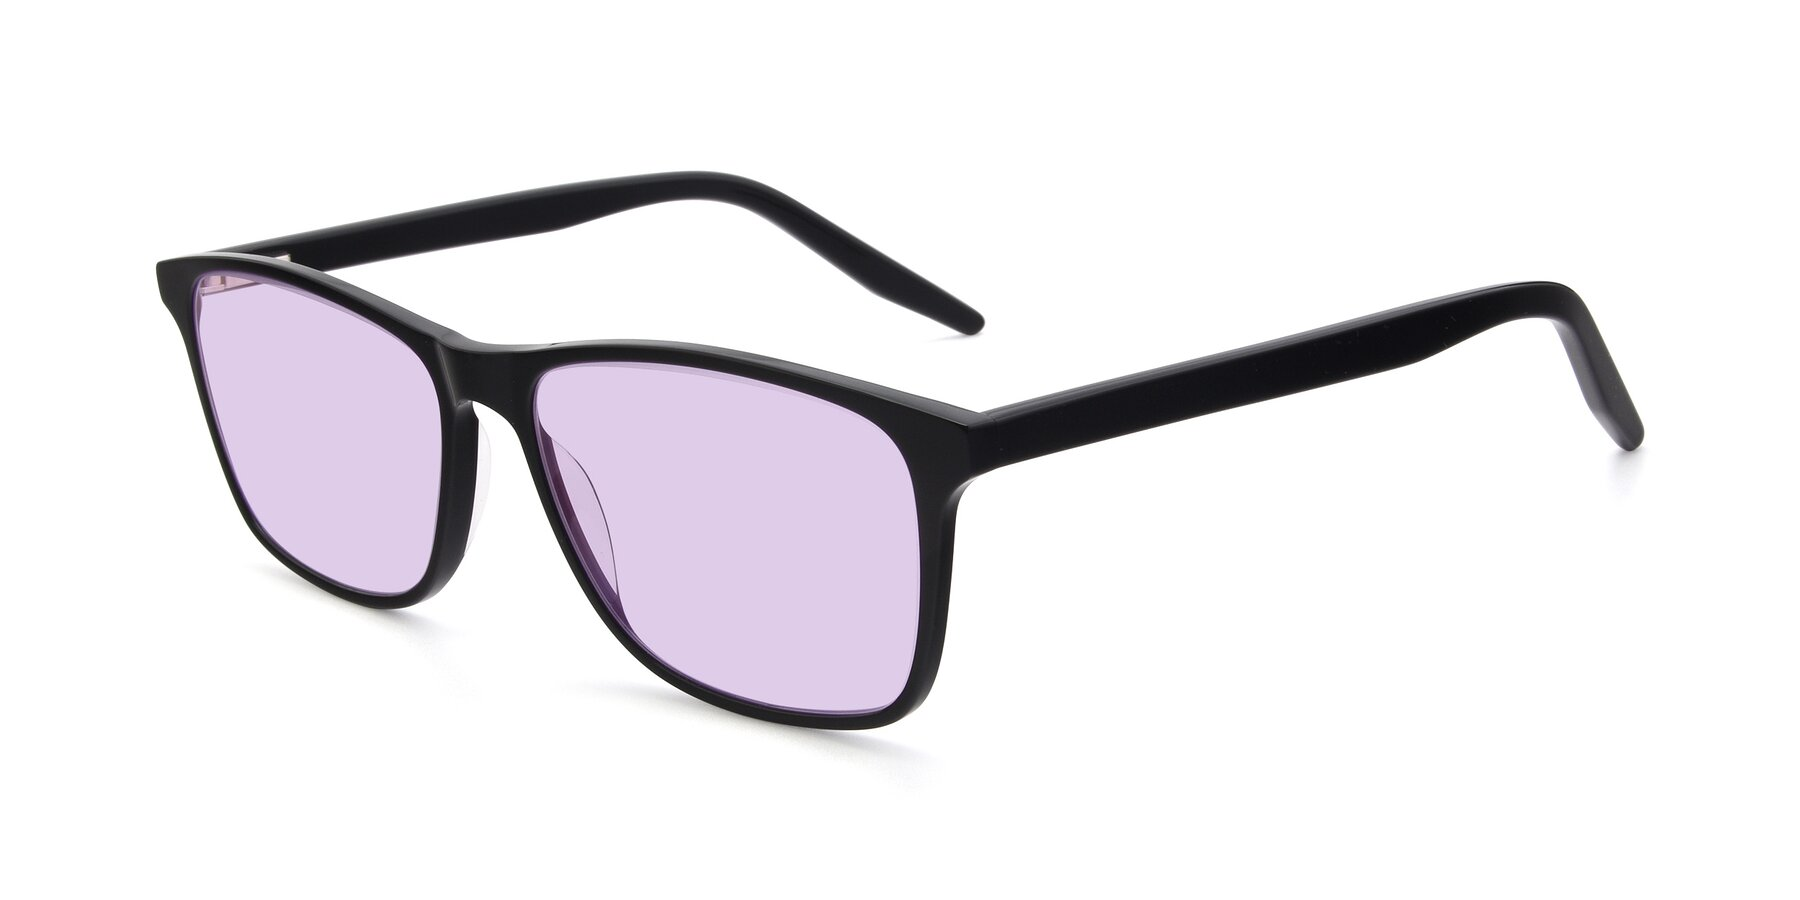 Angle of 17500 in Black with Light Purple Tinted Lenses